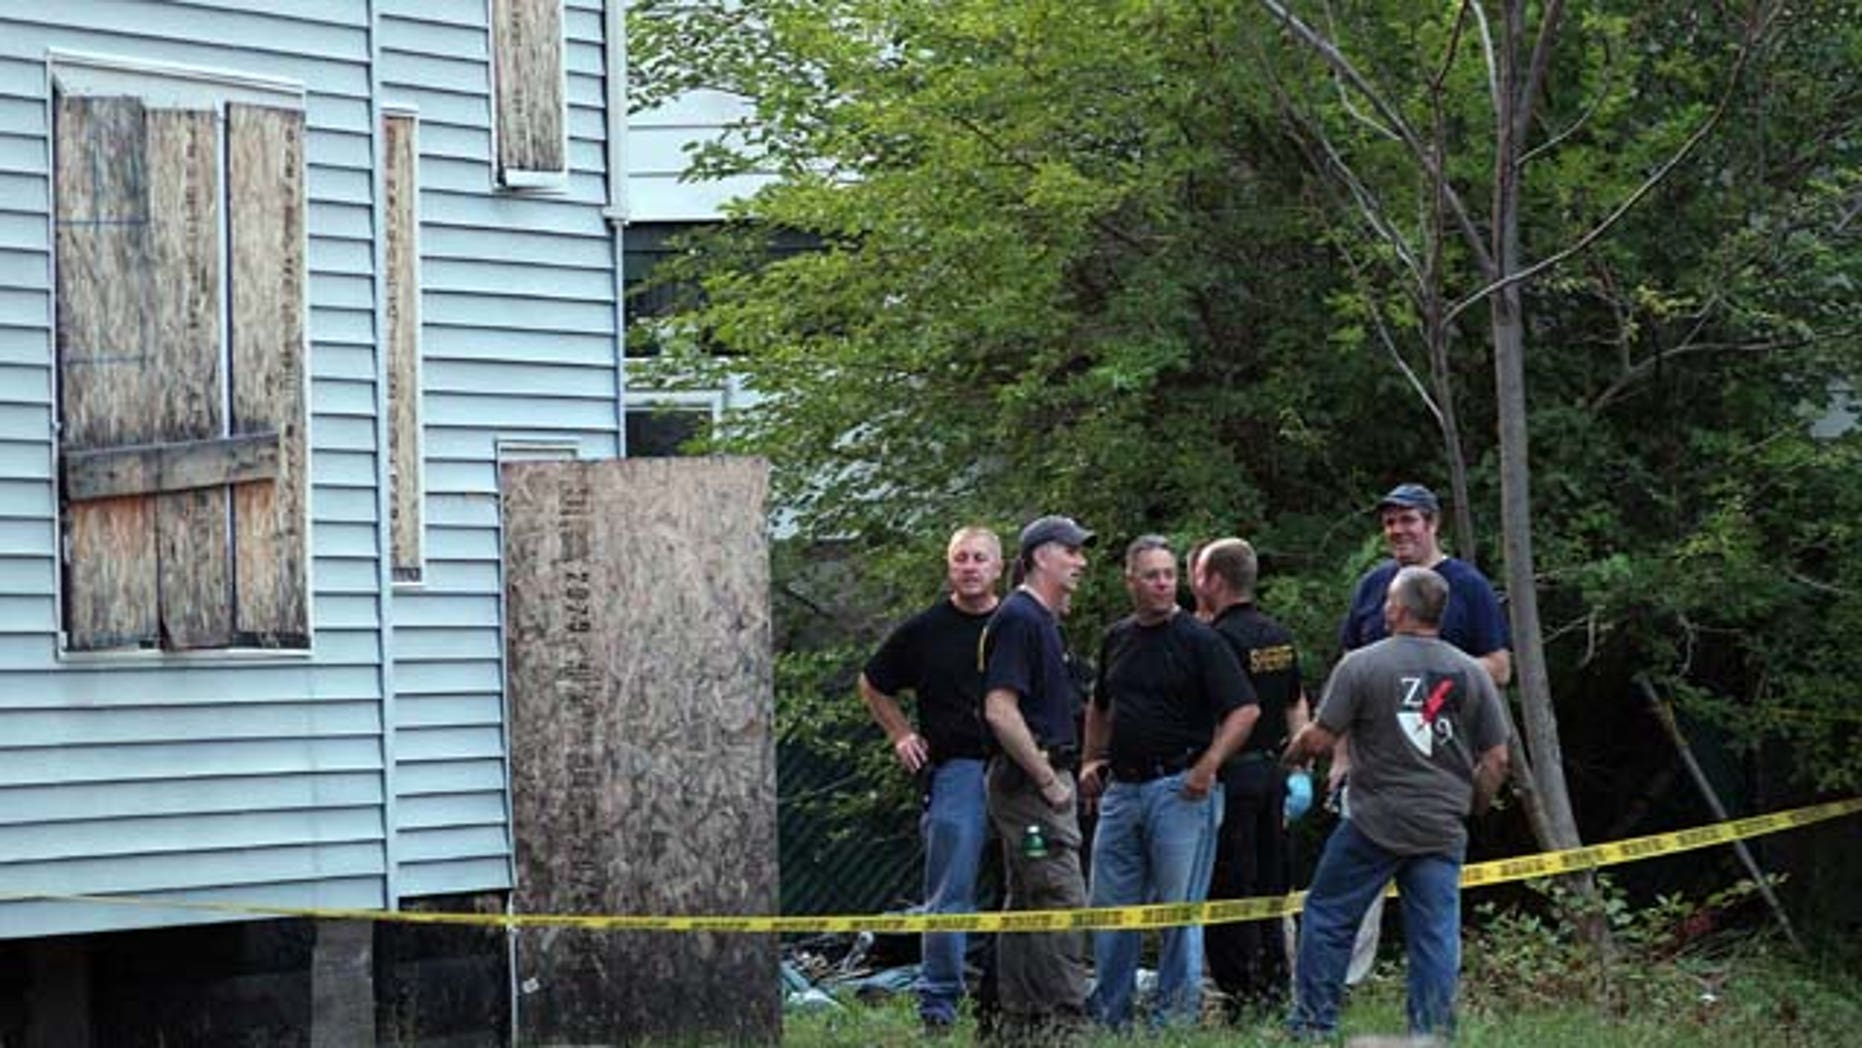 July 20, 2013: Law enforcement and FBI stand at the back of a boarded-up home where bodies were found earlier in the day Saturday in East Cleveland, Ohio. (AP Photo/The Plain Dealer, Joshua Gunter)